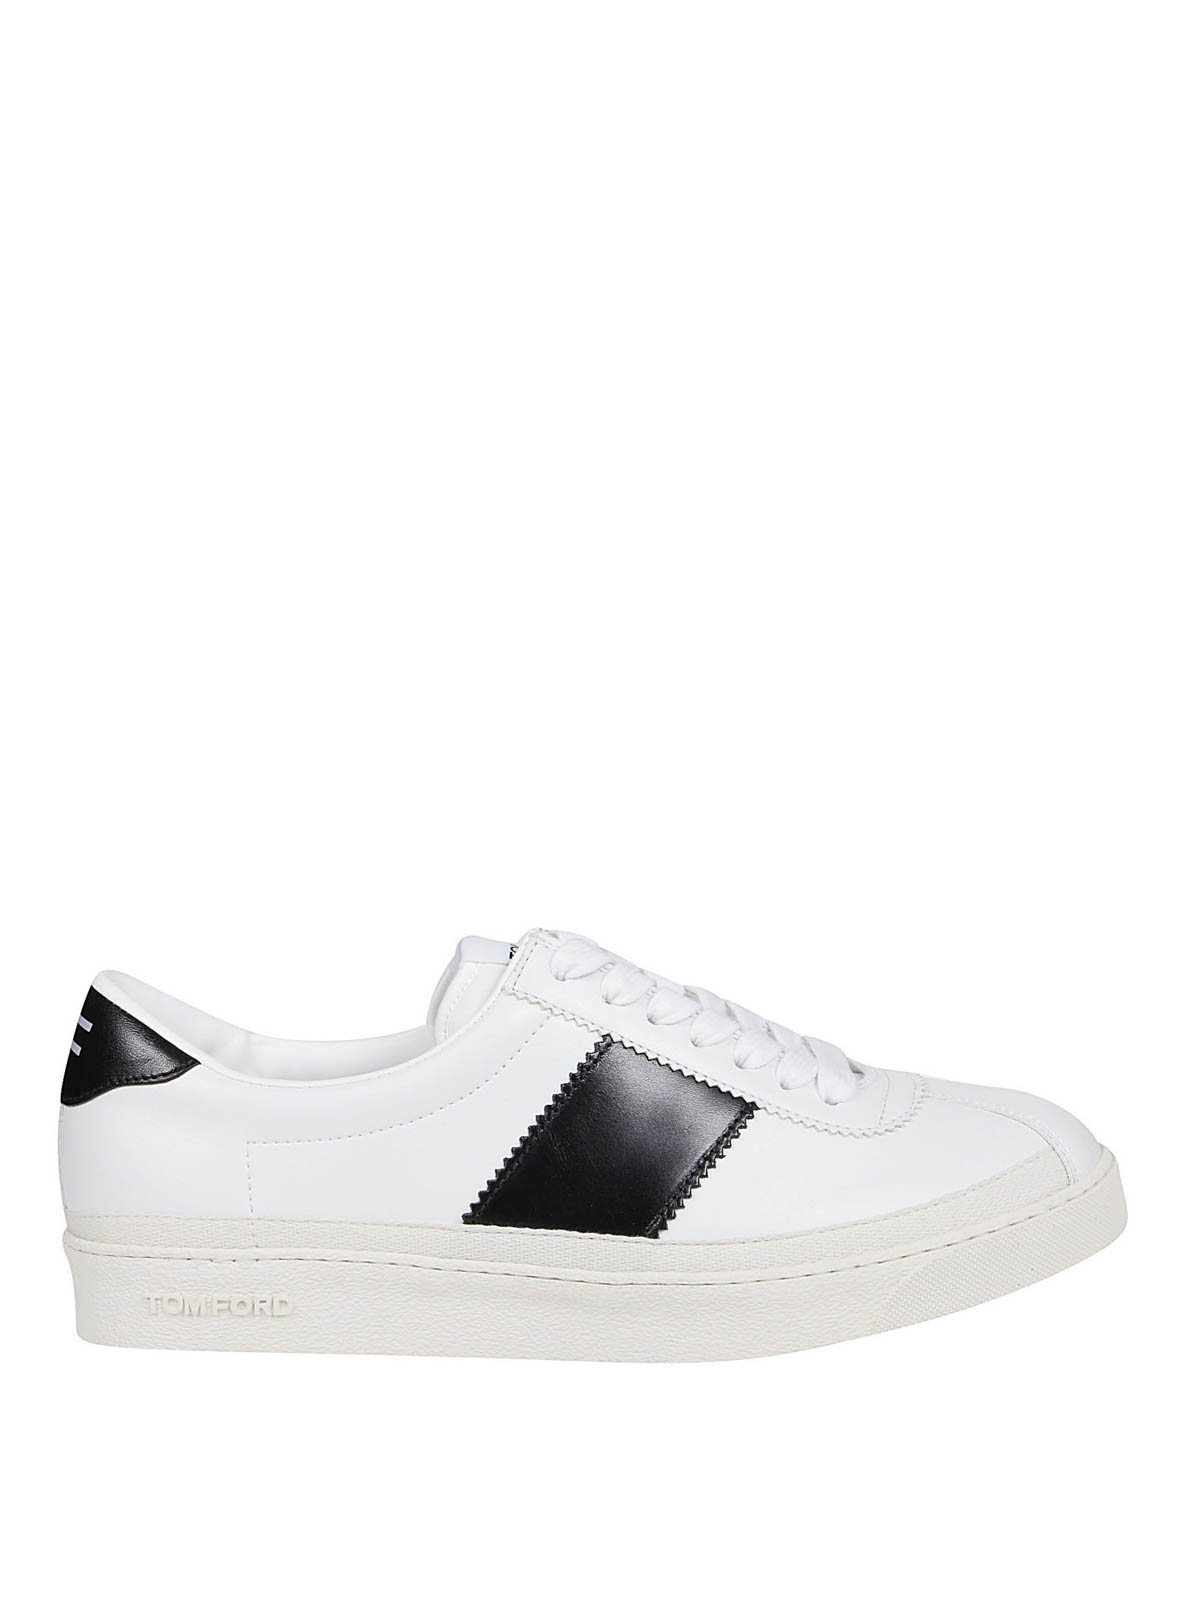 Tom Ford BANNISTER SNEAKERS